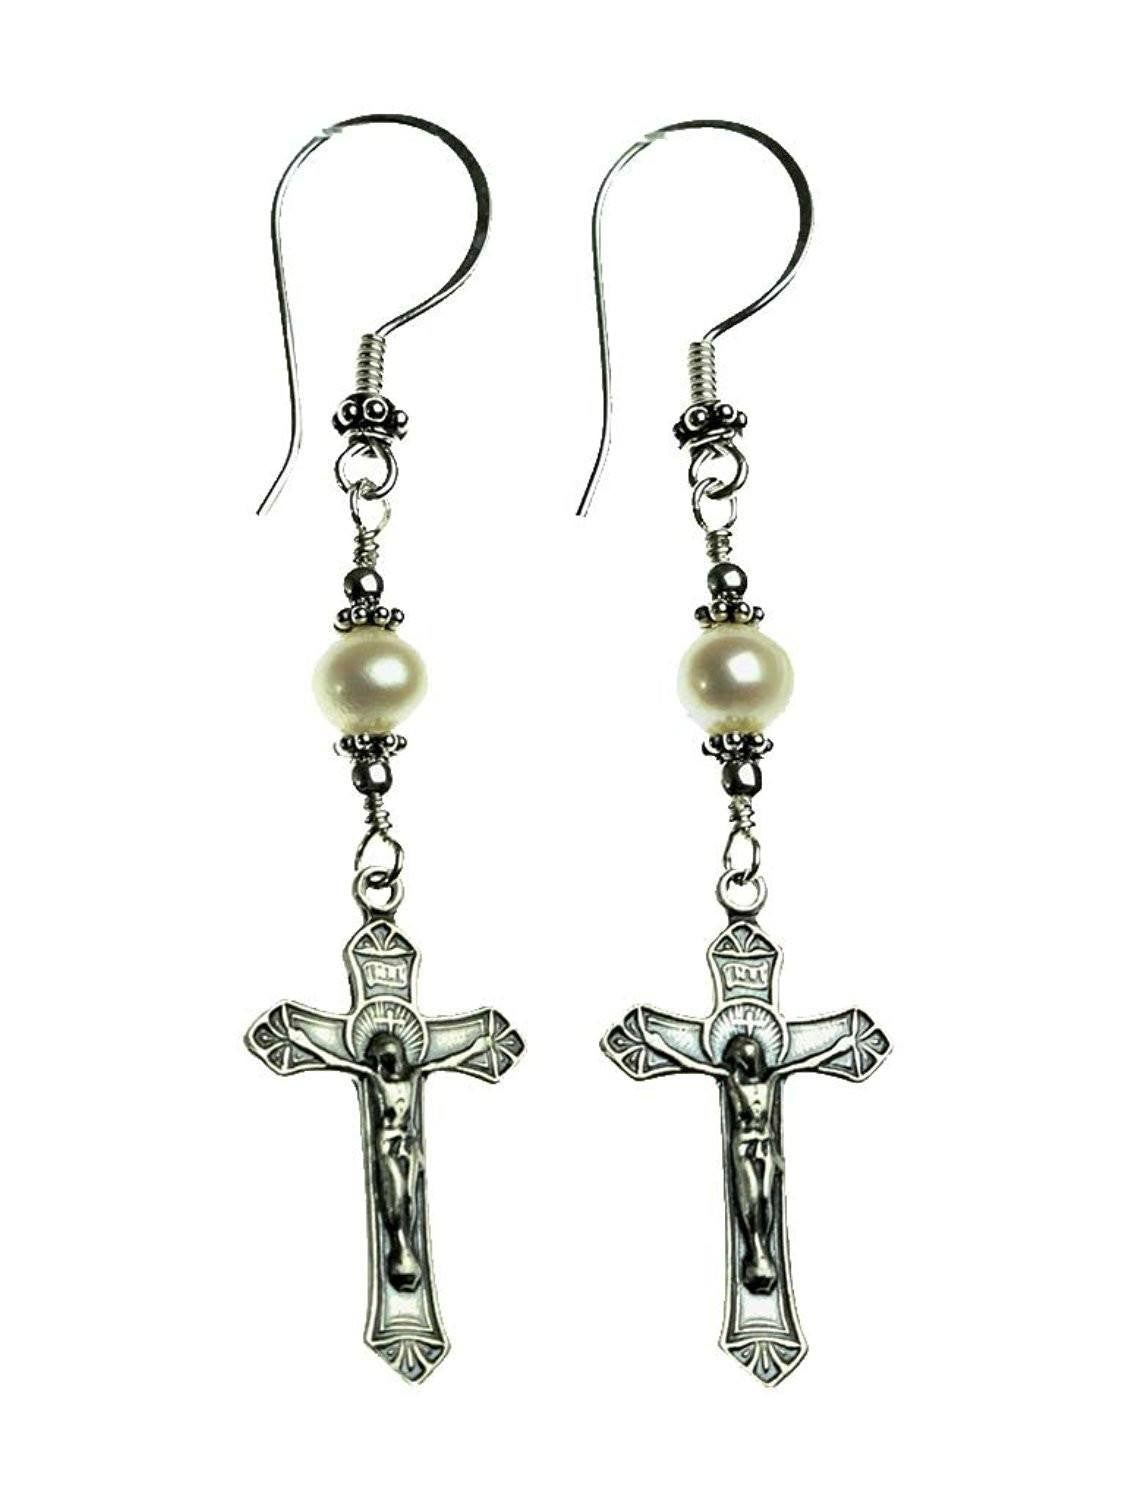 Handmade Sterling Silver Crucifix Earrings Freshwater Cultured Pearl